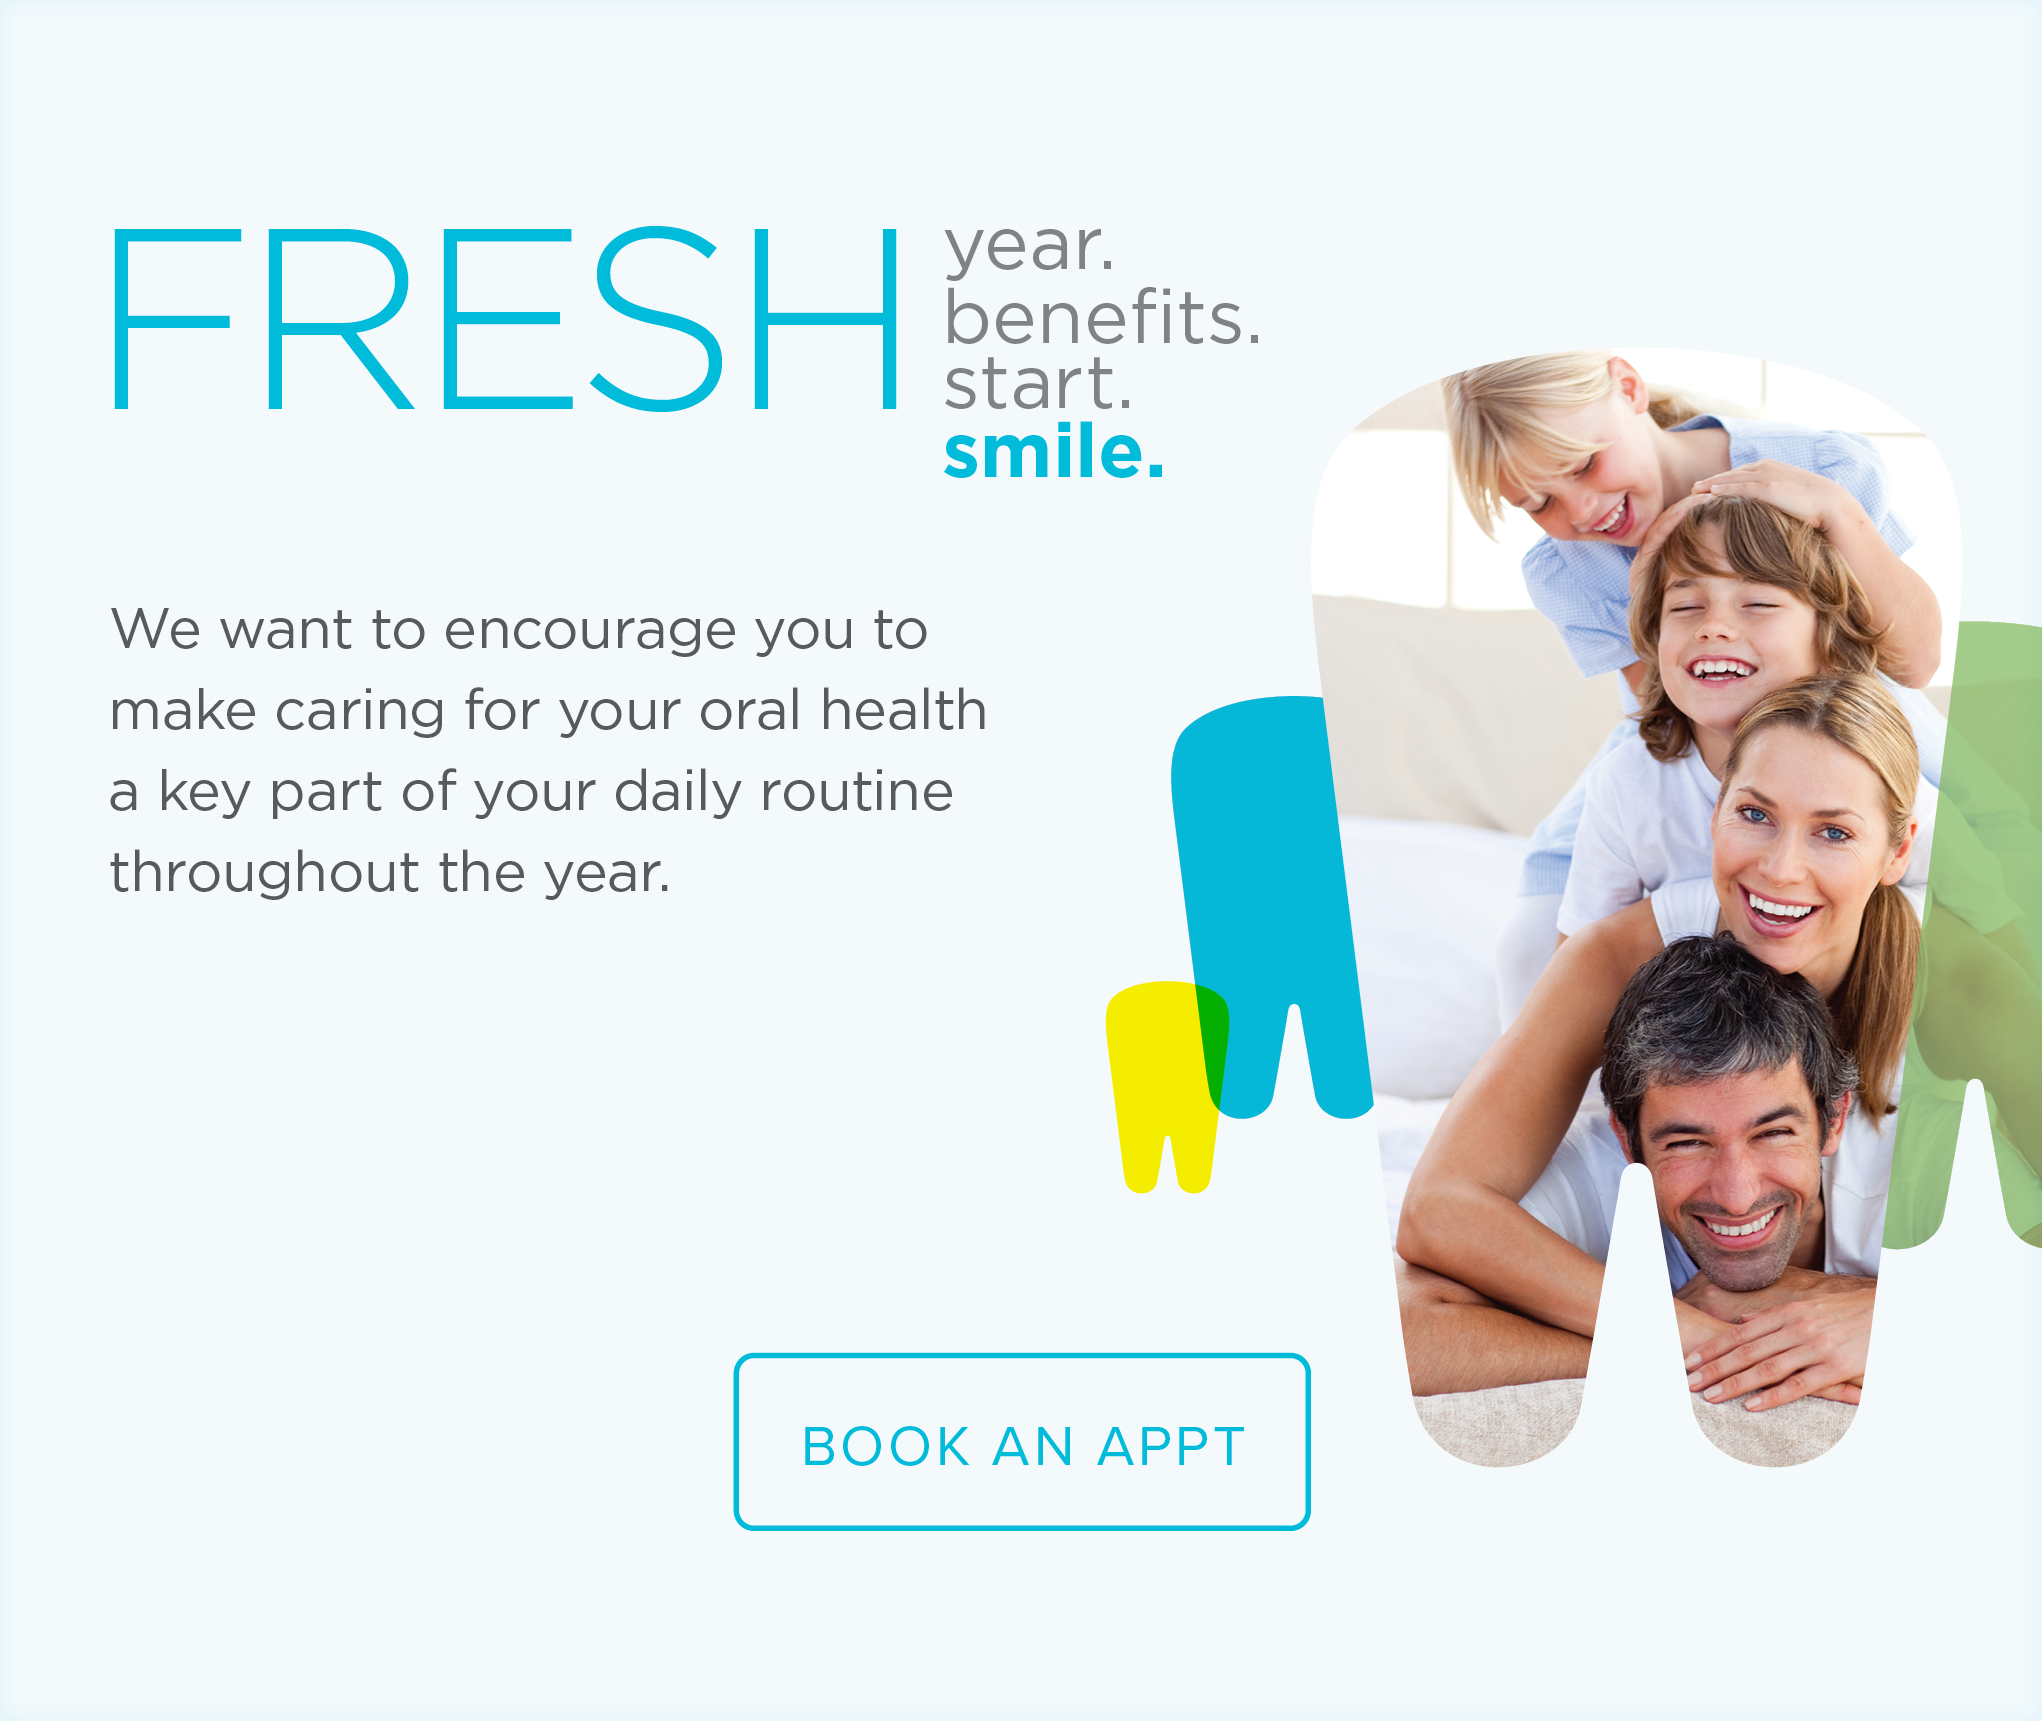 Brentwood Smiles Dentistry and Orthodontics - Make the Most of Your Benefits